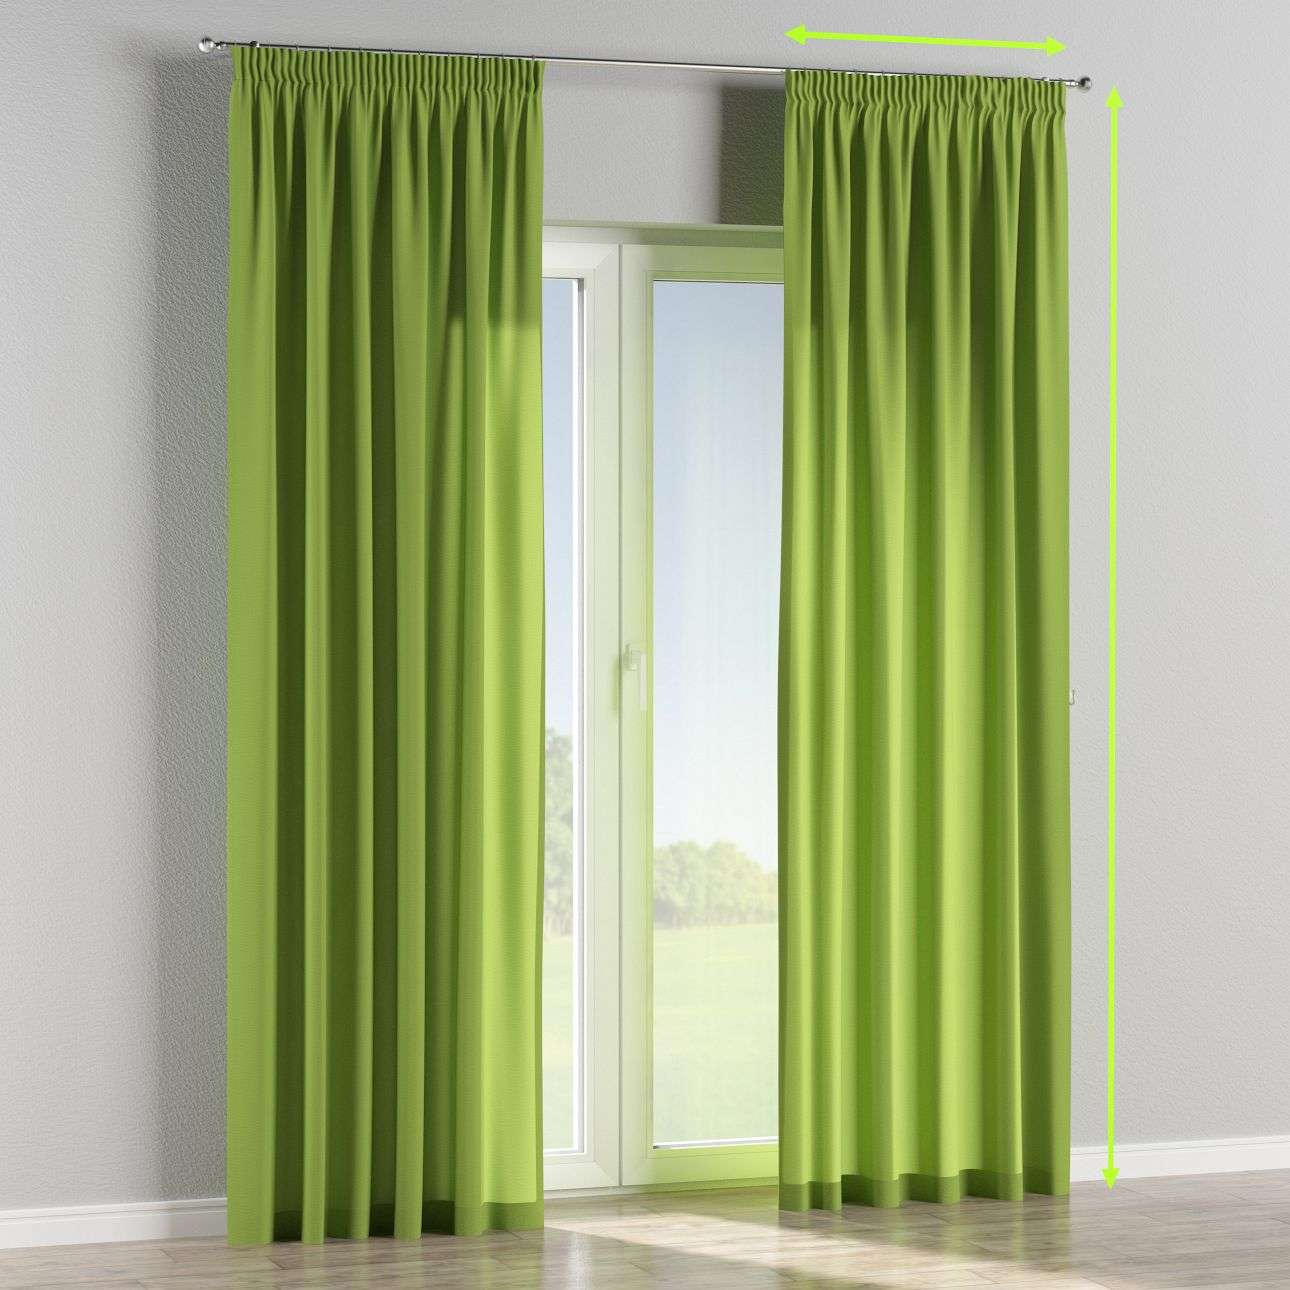 Pencil pleat lined curtains in collection Quadro, fabric: 136-37